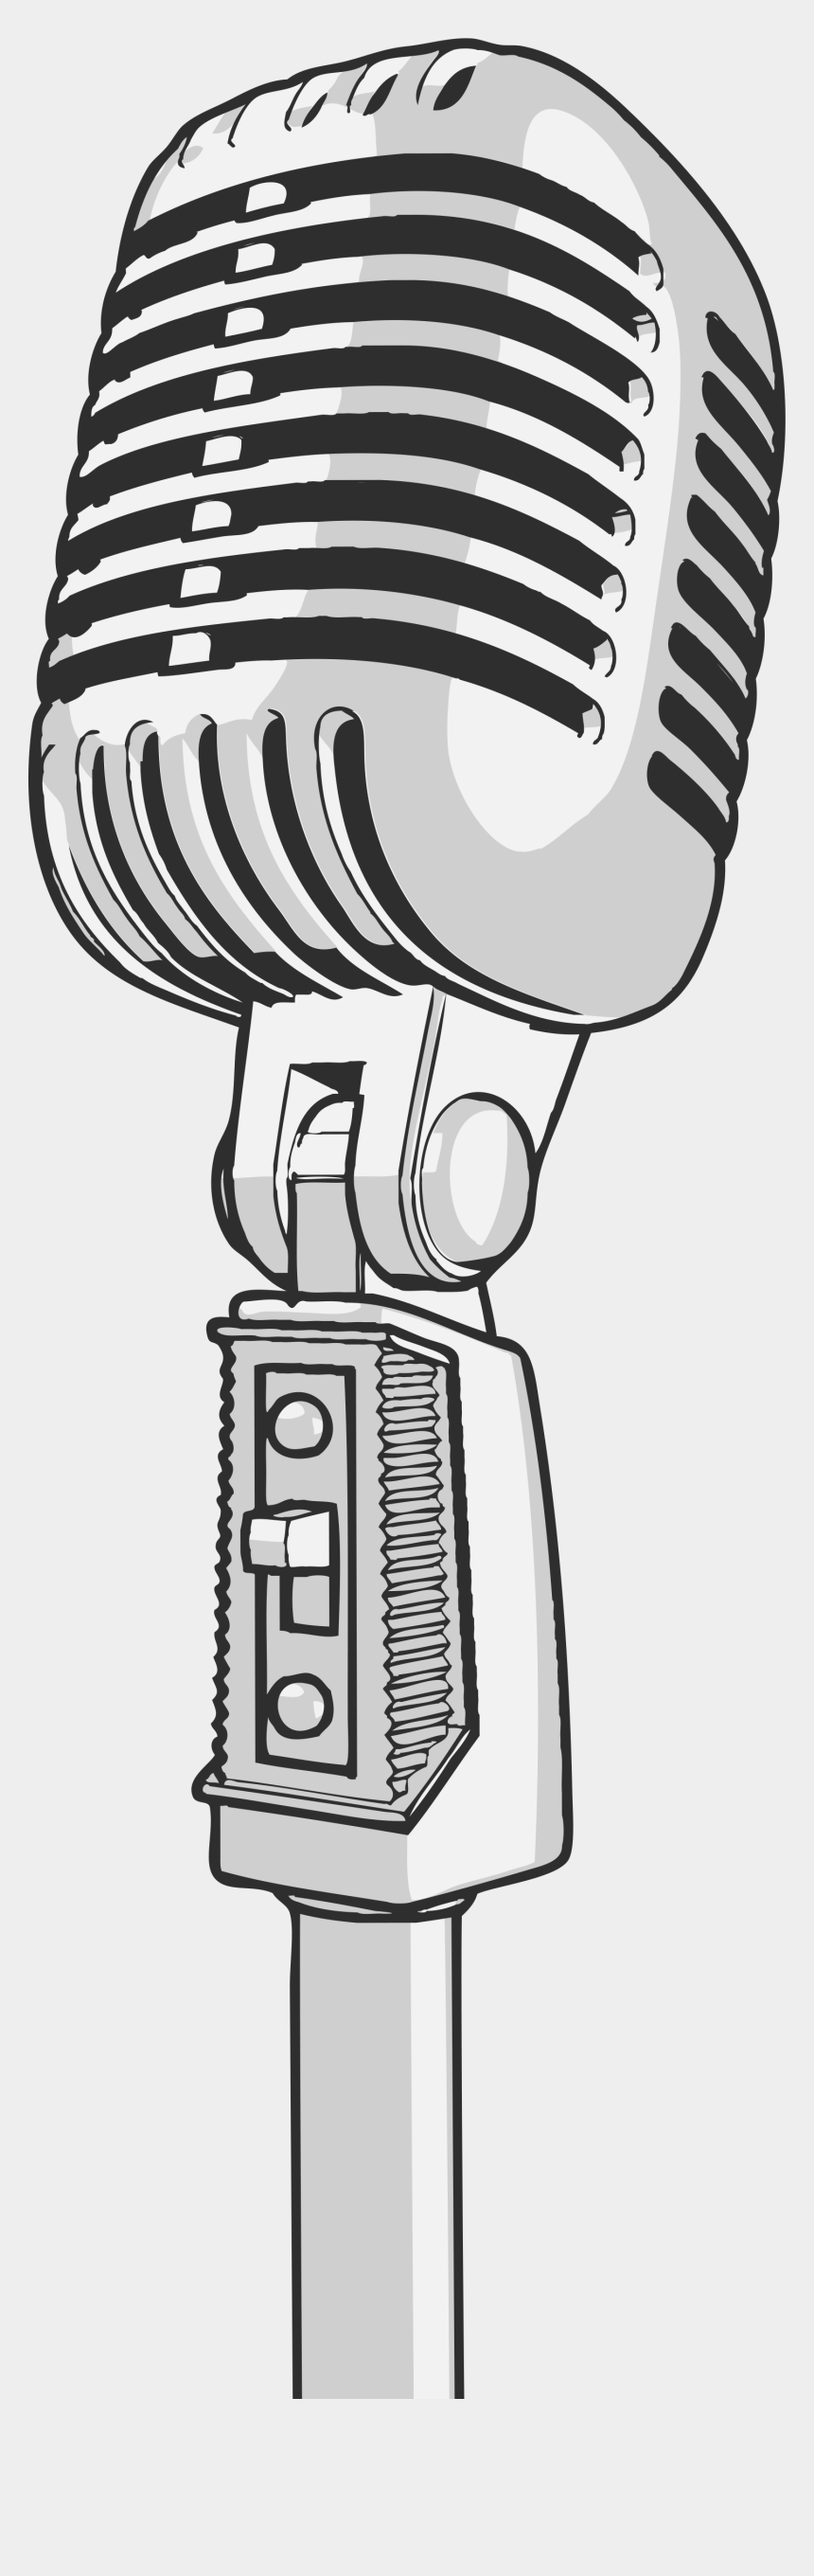 microphone with music notes clipart, Cartoons - Free Online Microphones Musical Instruments Mic Vector - Imagenes De Microfonos Png